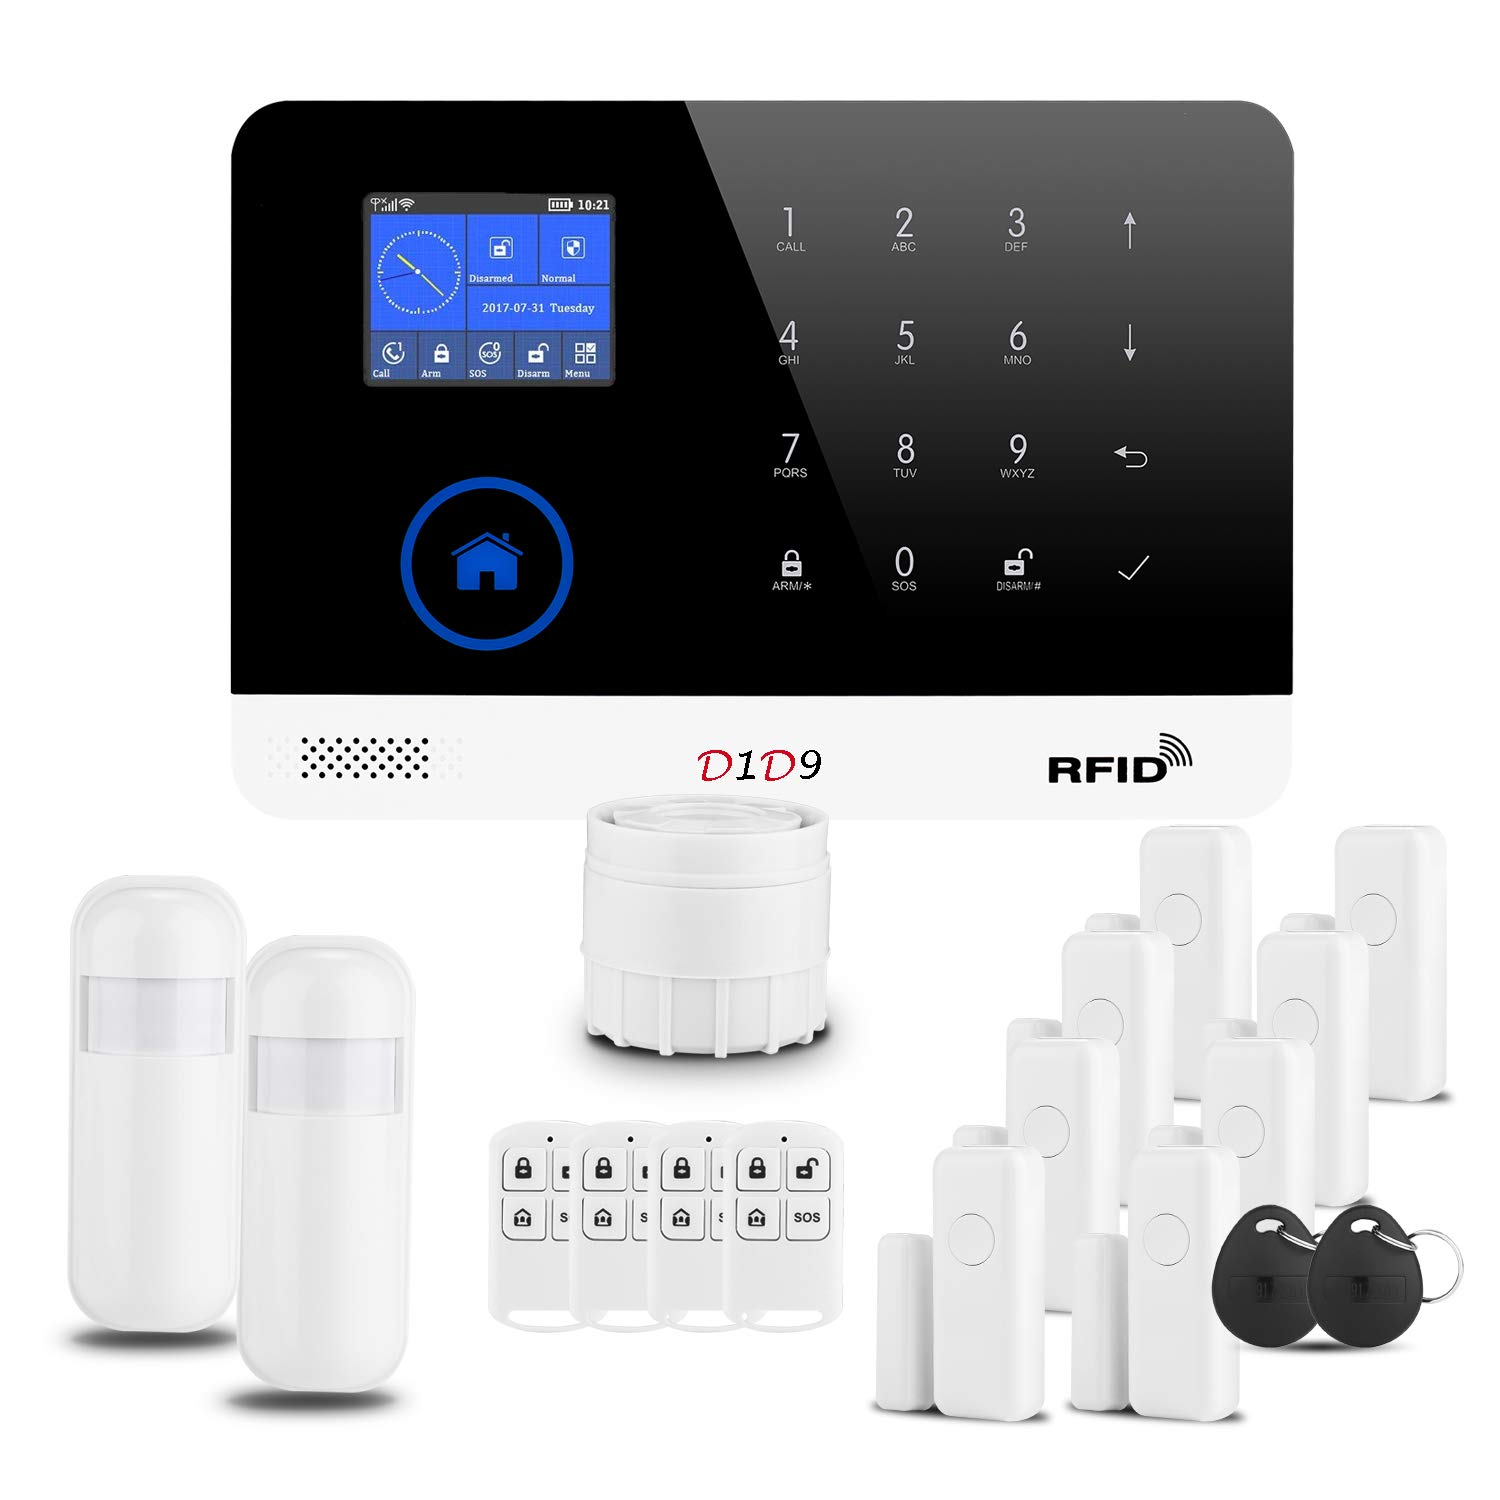 Burglar Alarm System 3G WiFi RFID DIY Wireless GSM for Home Security